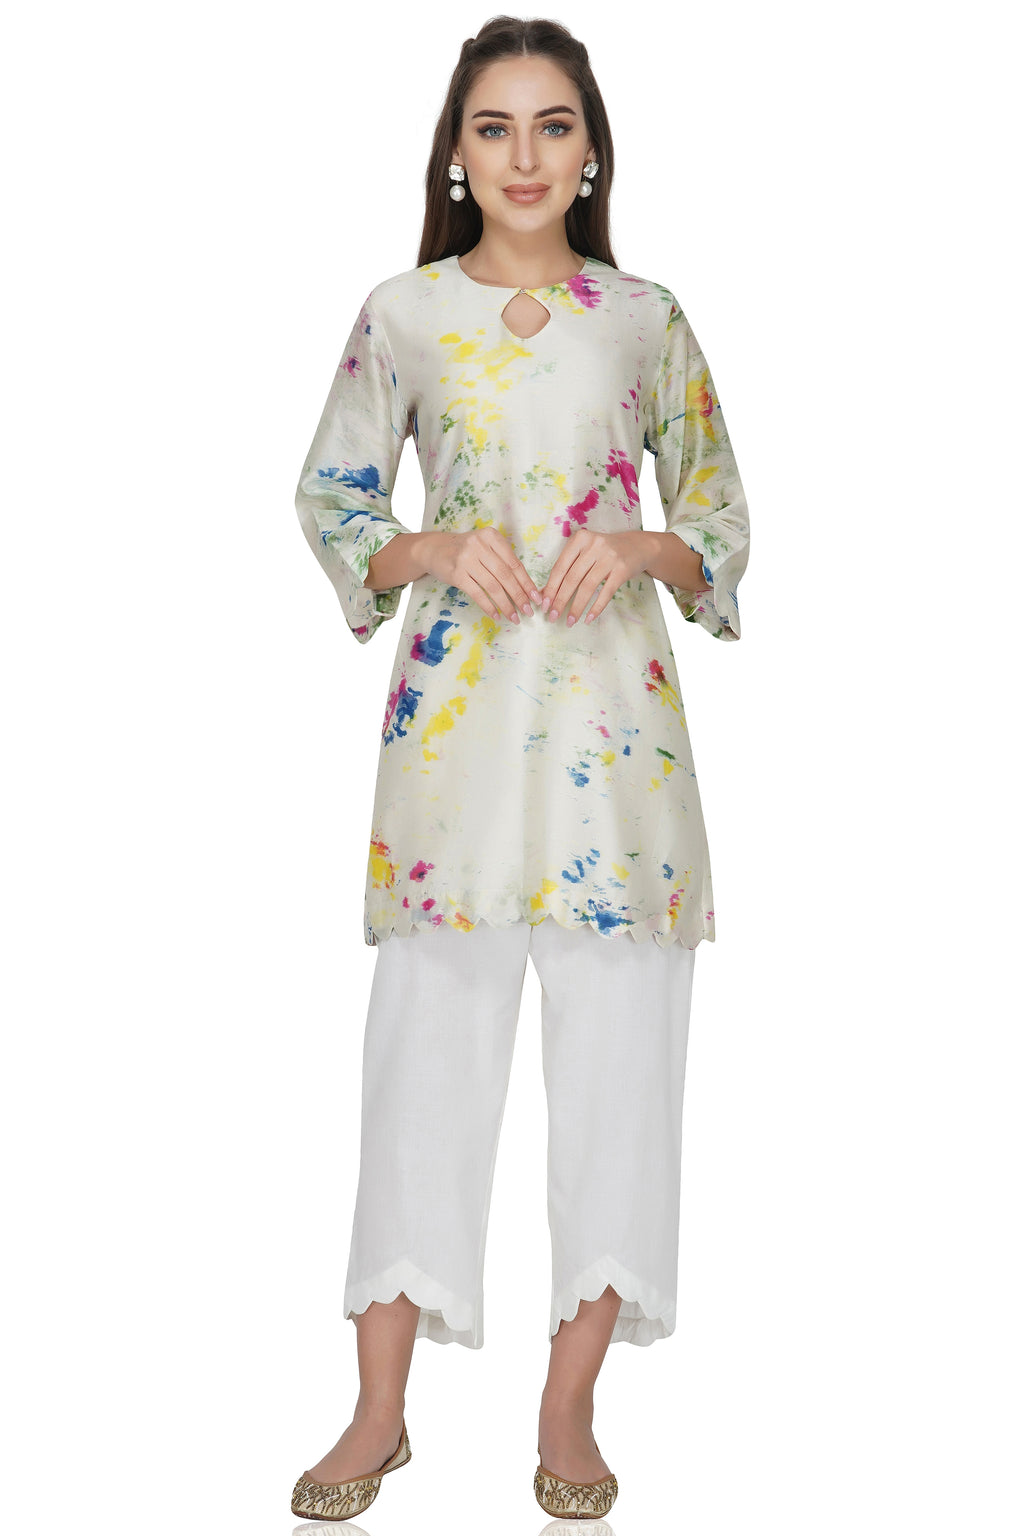 Cream Tie and Dye Chanderi Silk Kurta with White Cotton Pants - Set of 2